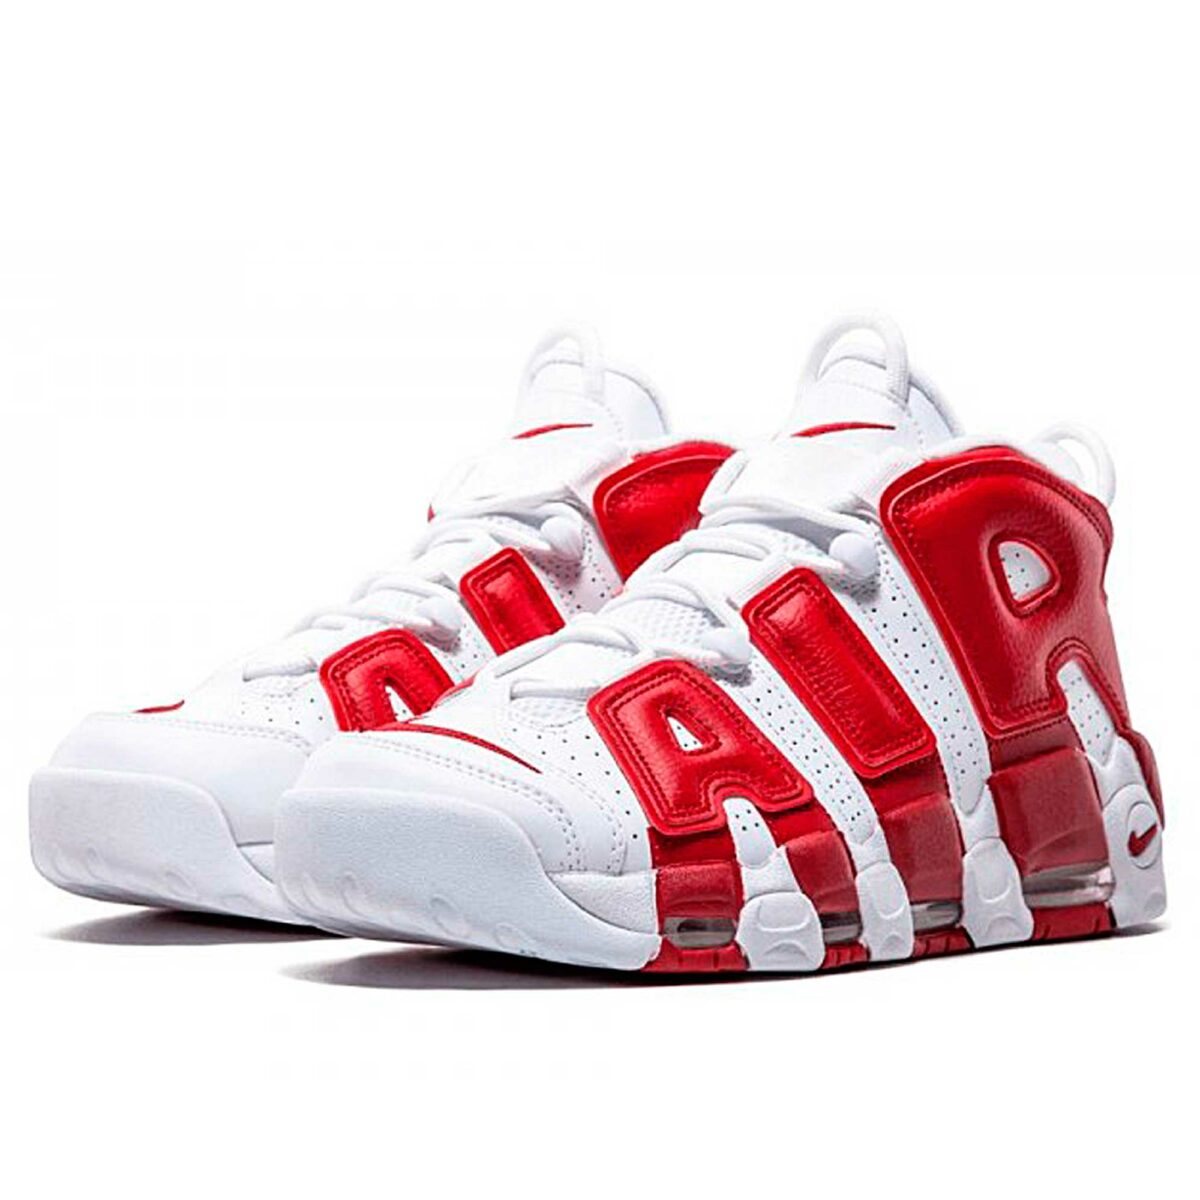 nike air more uptempo white gym red 414962-100 купить